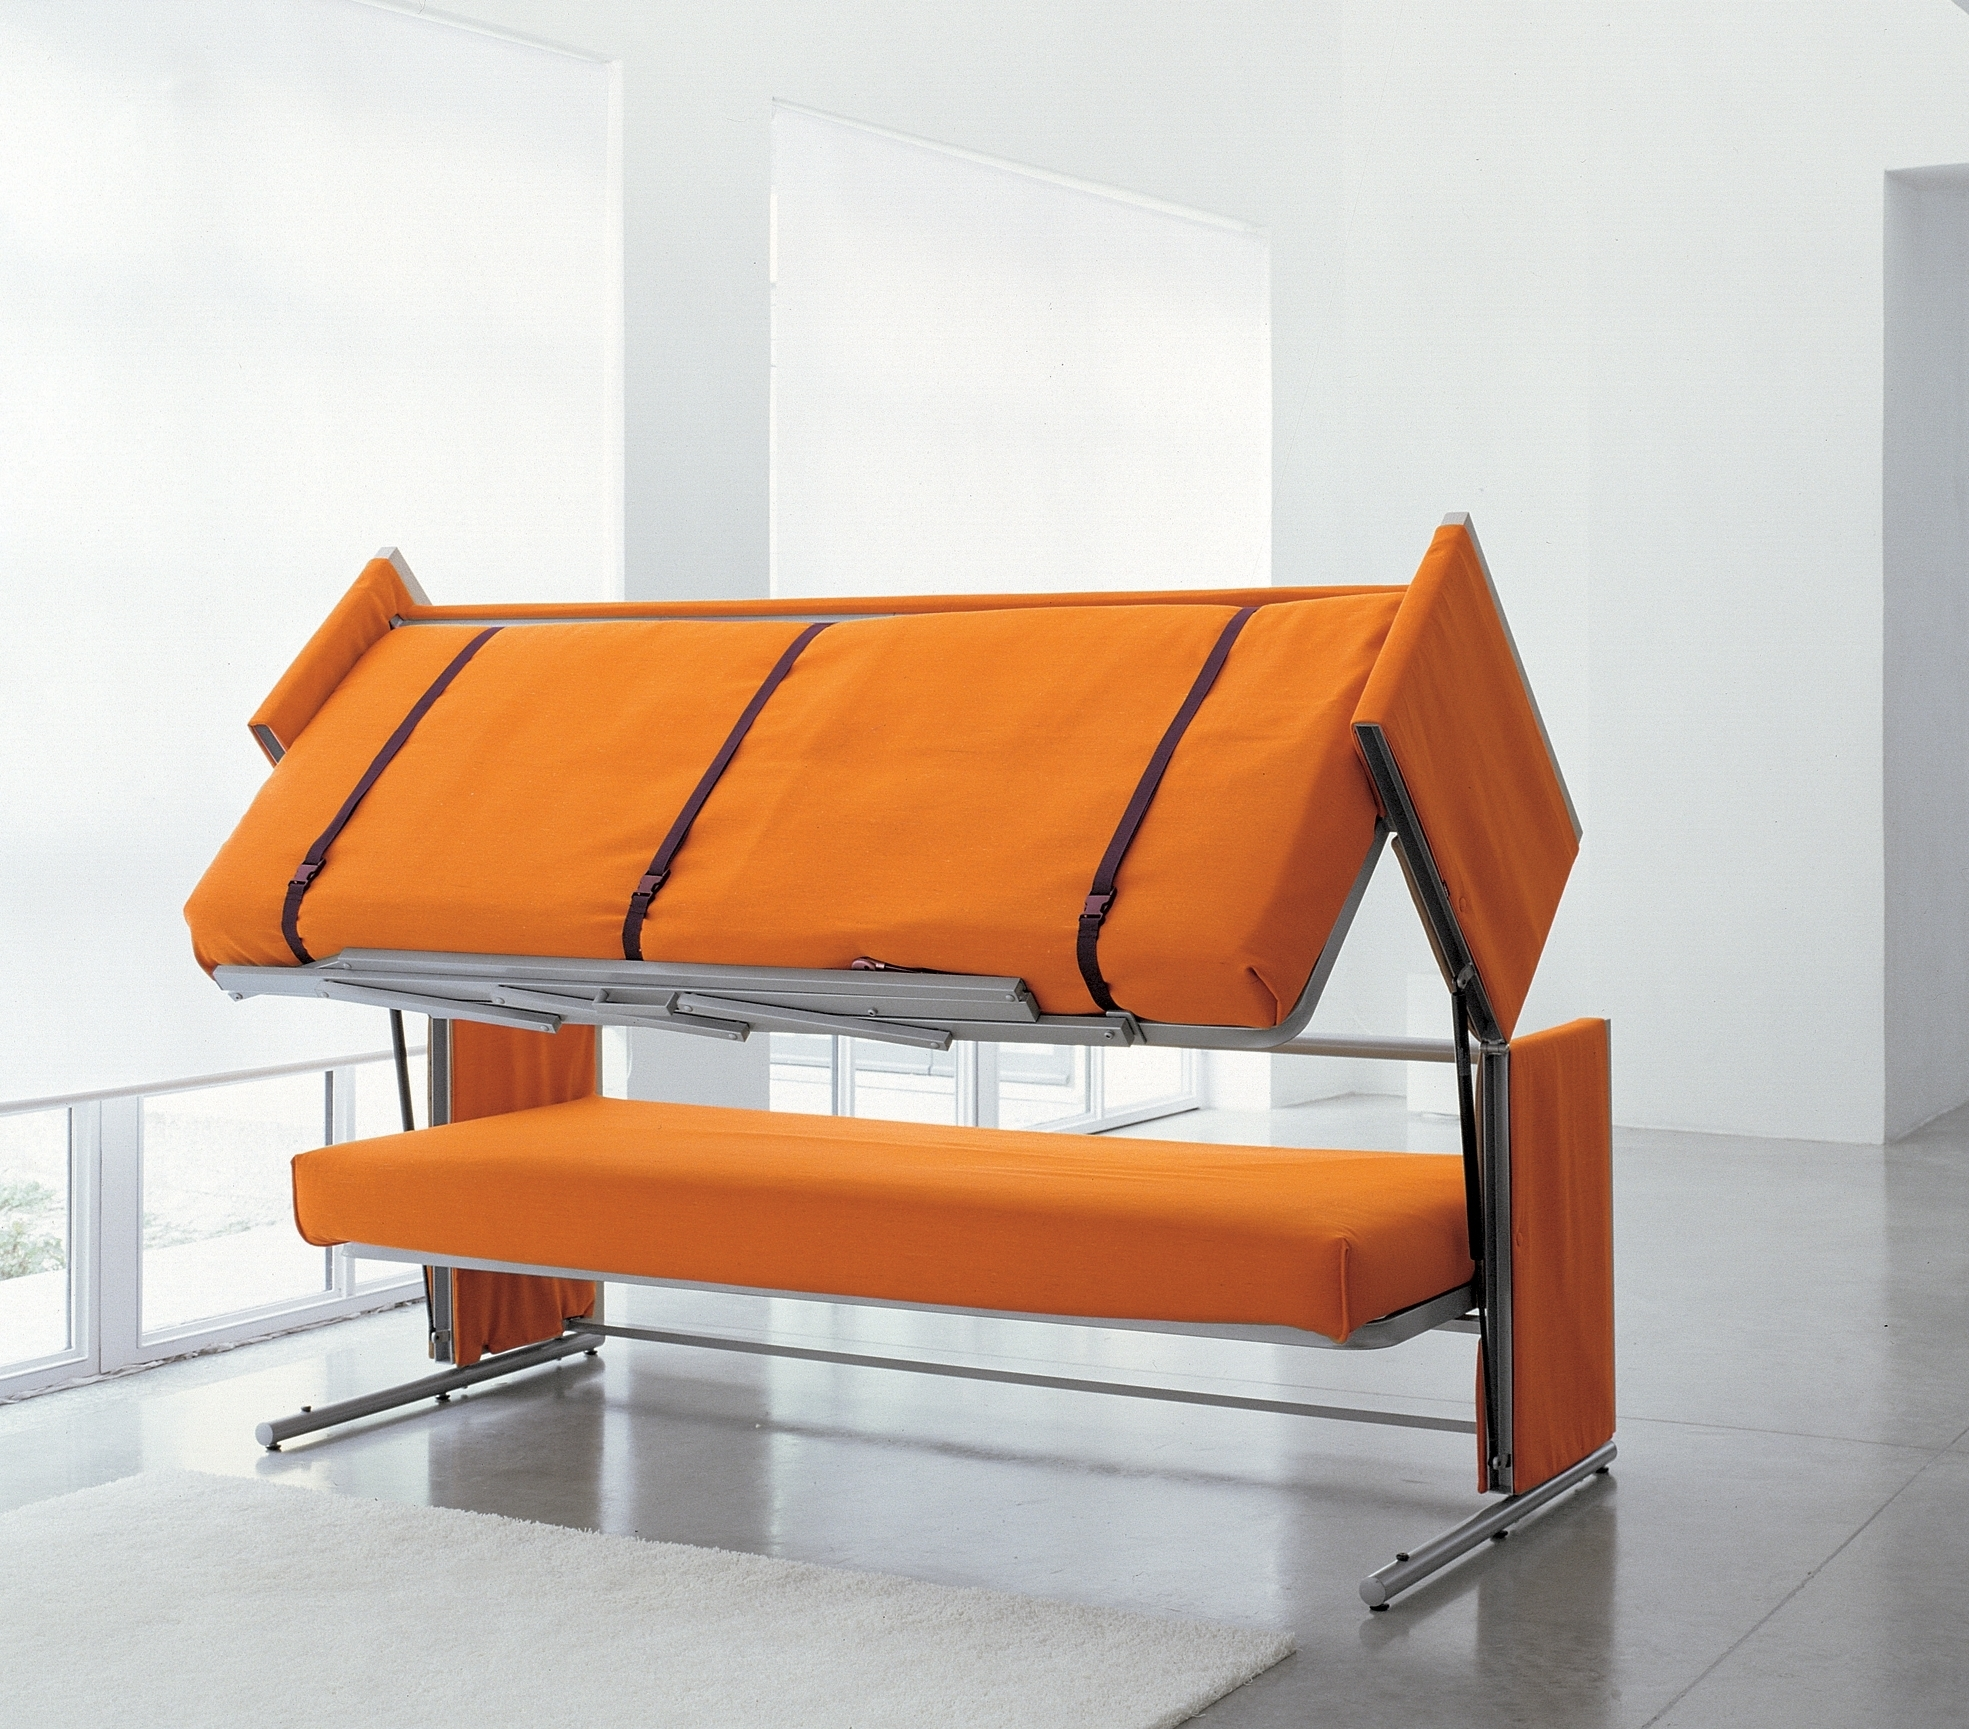 Doc Sofa Bunk Bed Bonbon Design • Sofa Bed In Fashionable Sofa Bunk Beds (Gallery 3 of 20)